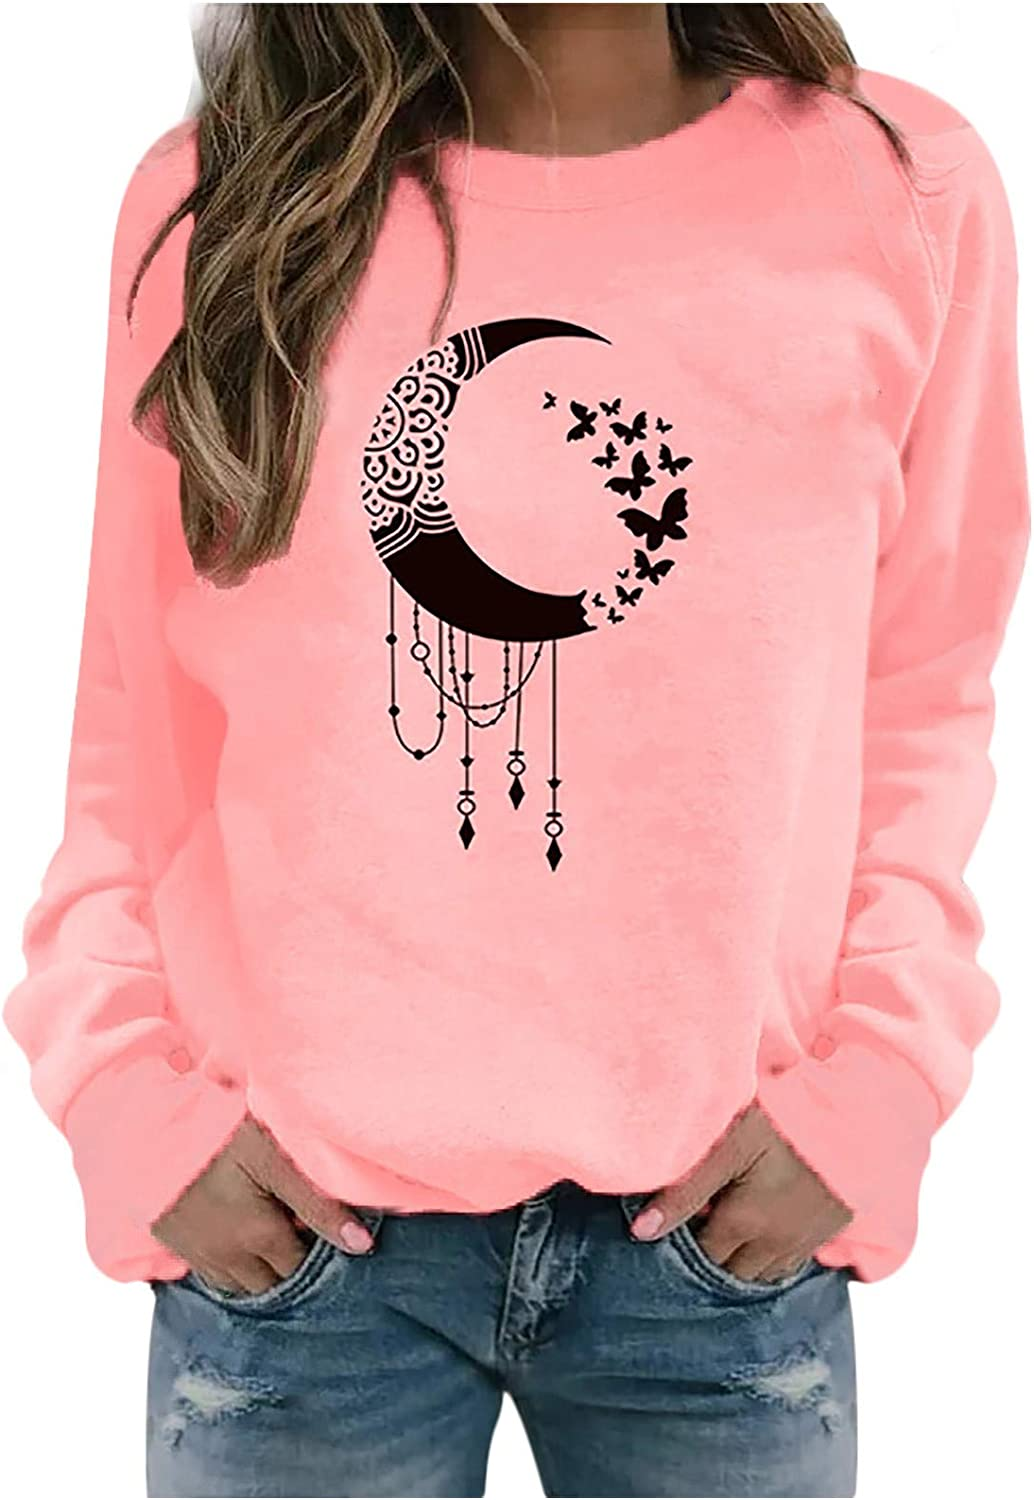 Sweatshirts for Women, Women's Funny Print Long Sleeve Crew Neck Sweatshirts Casual Sweaters Pullover Tops Shirts